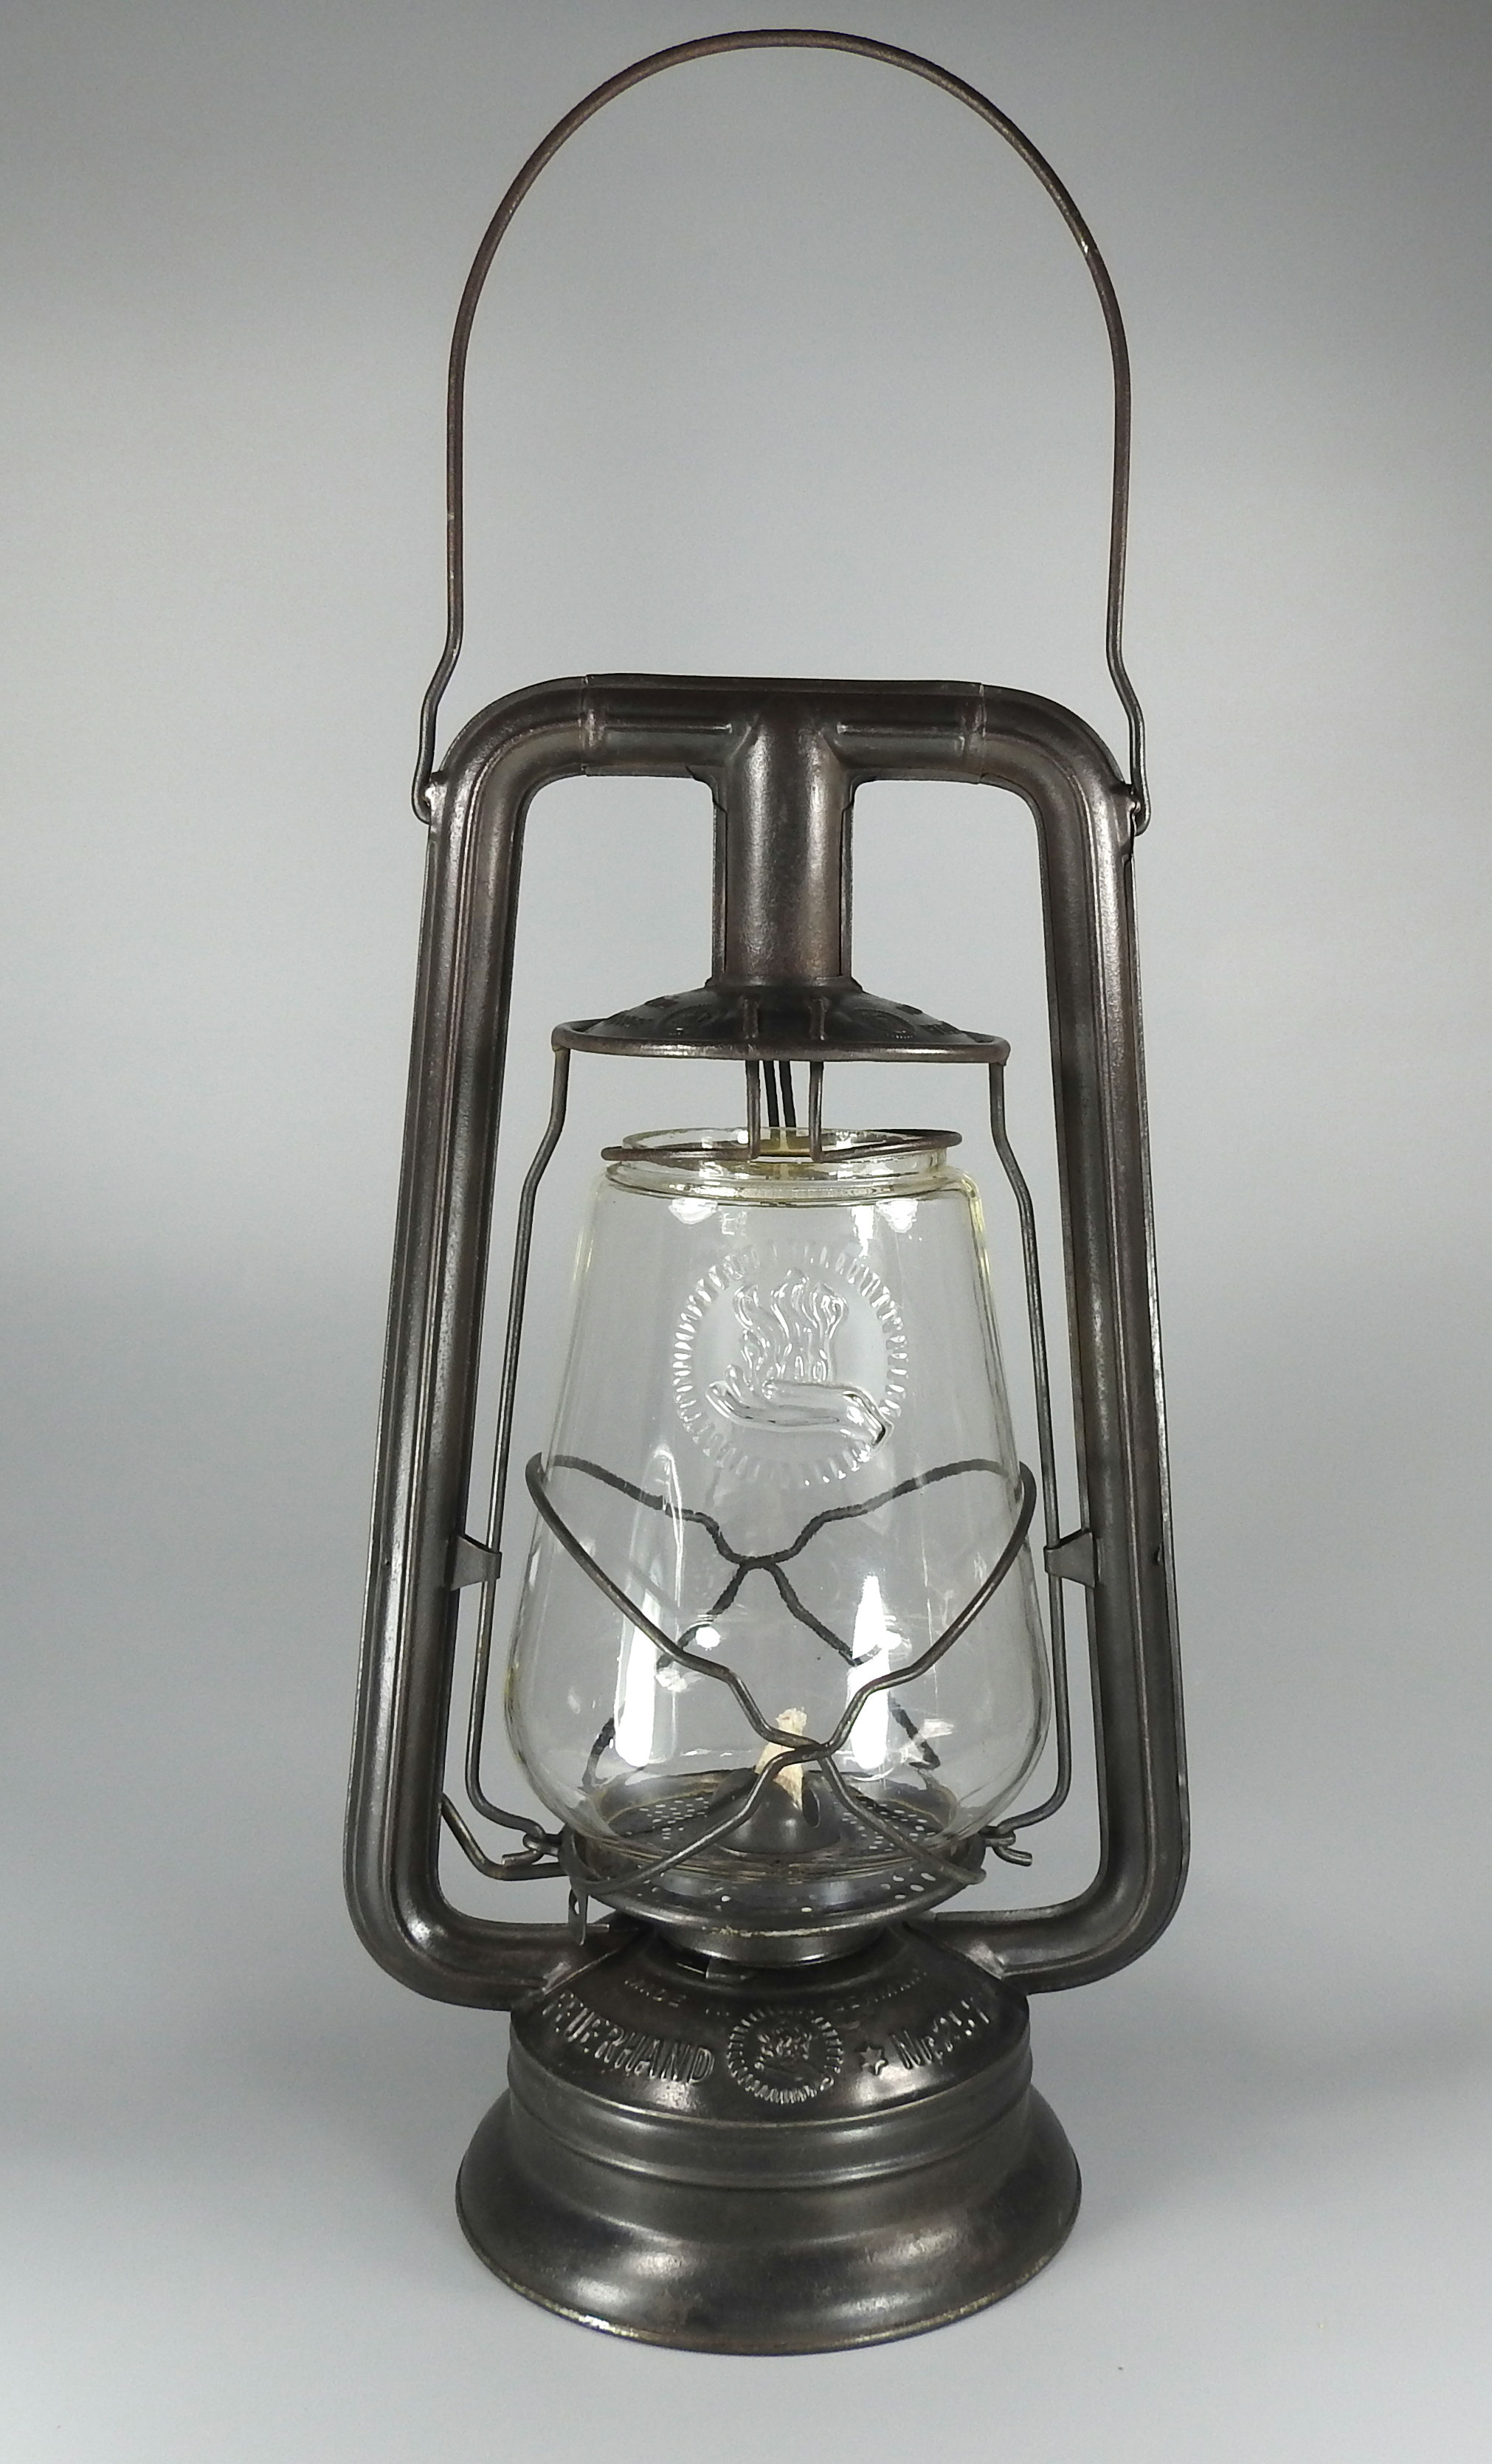 Most Expensive Oil Lamp Lamp Design Ideas